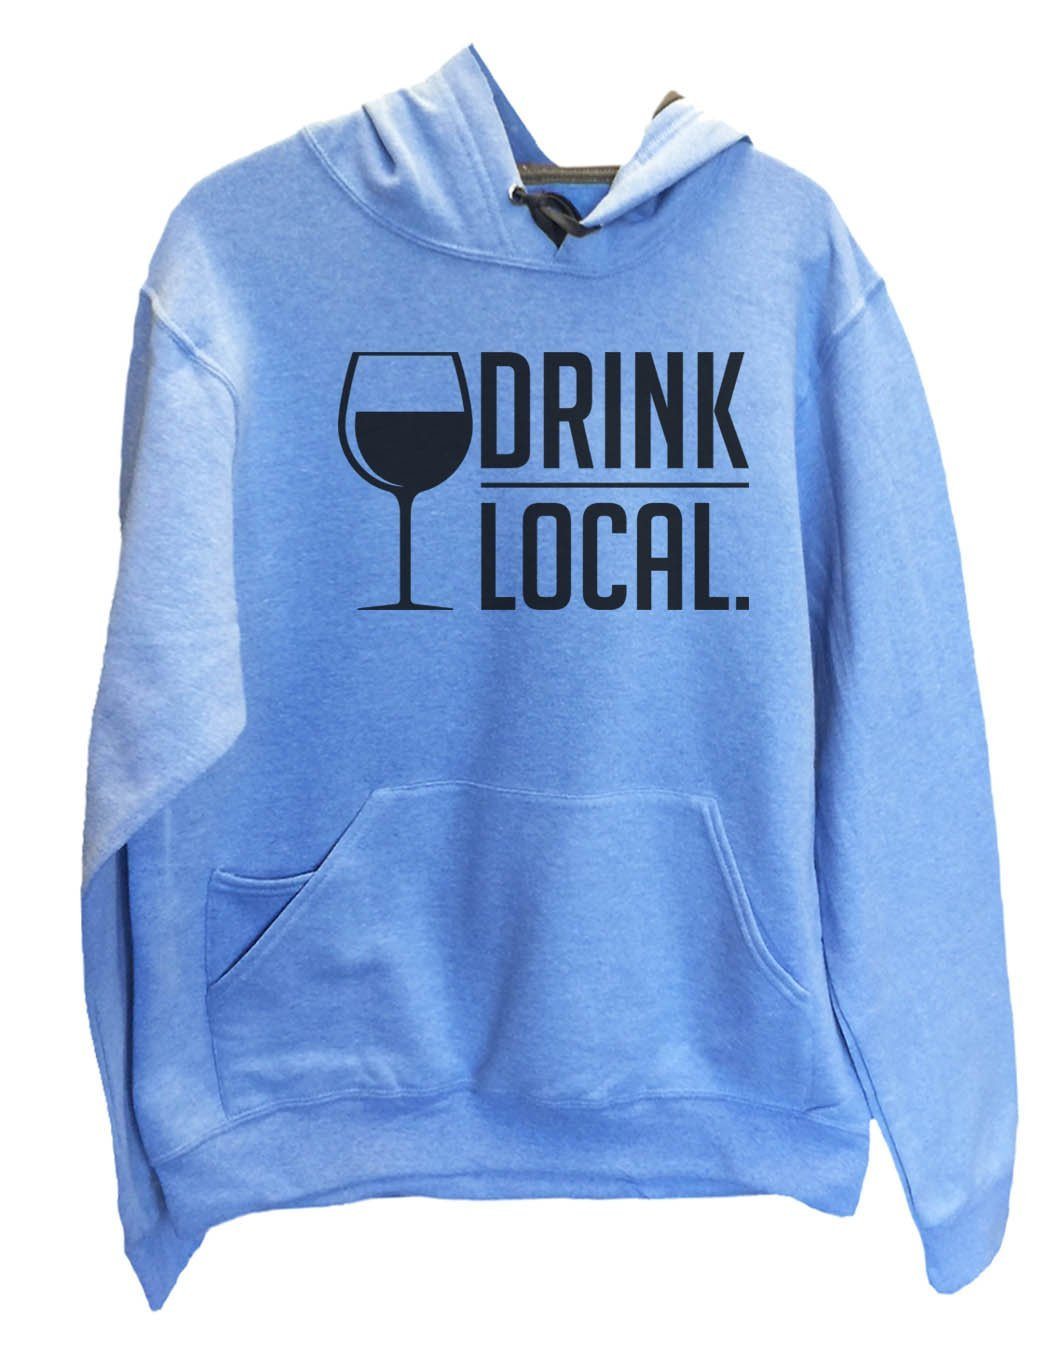 UNISEX HOODIE - Drink Local. - FUNNY MENS AND WOMENS HOODED SWEATSHIRTS - 2157 Funny Shirt Small / North Carolina Blue